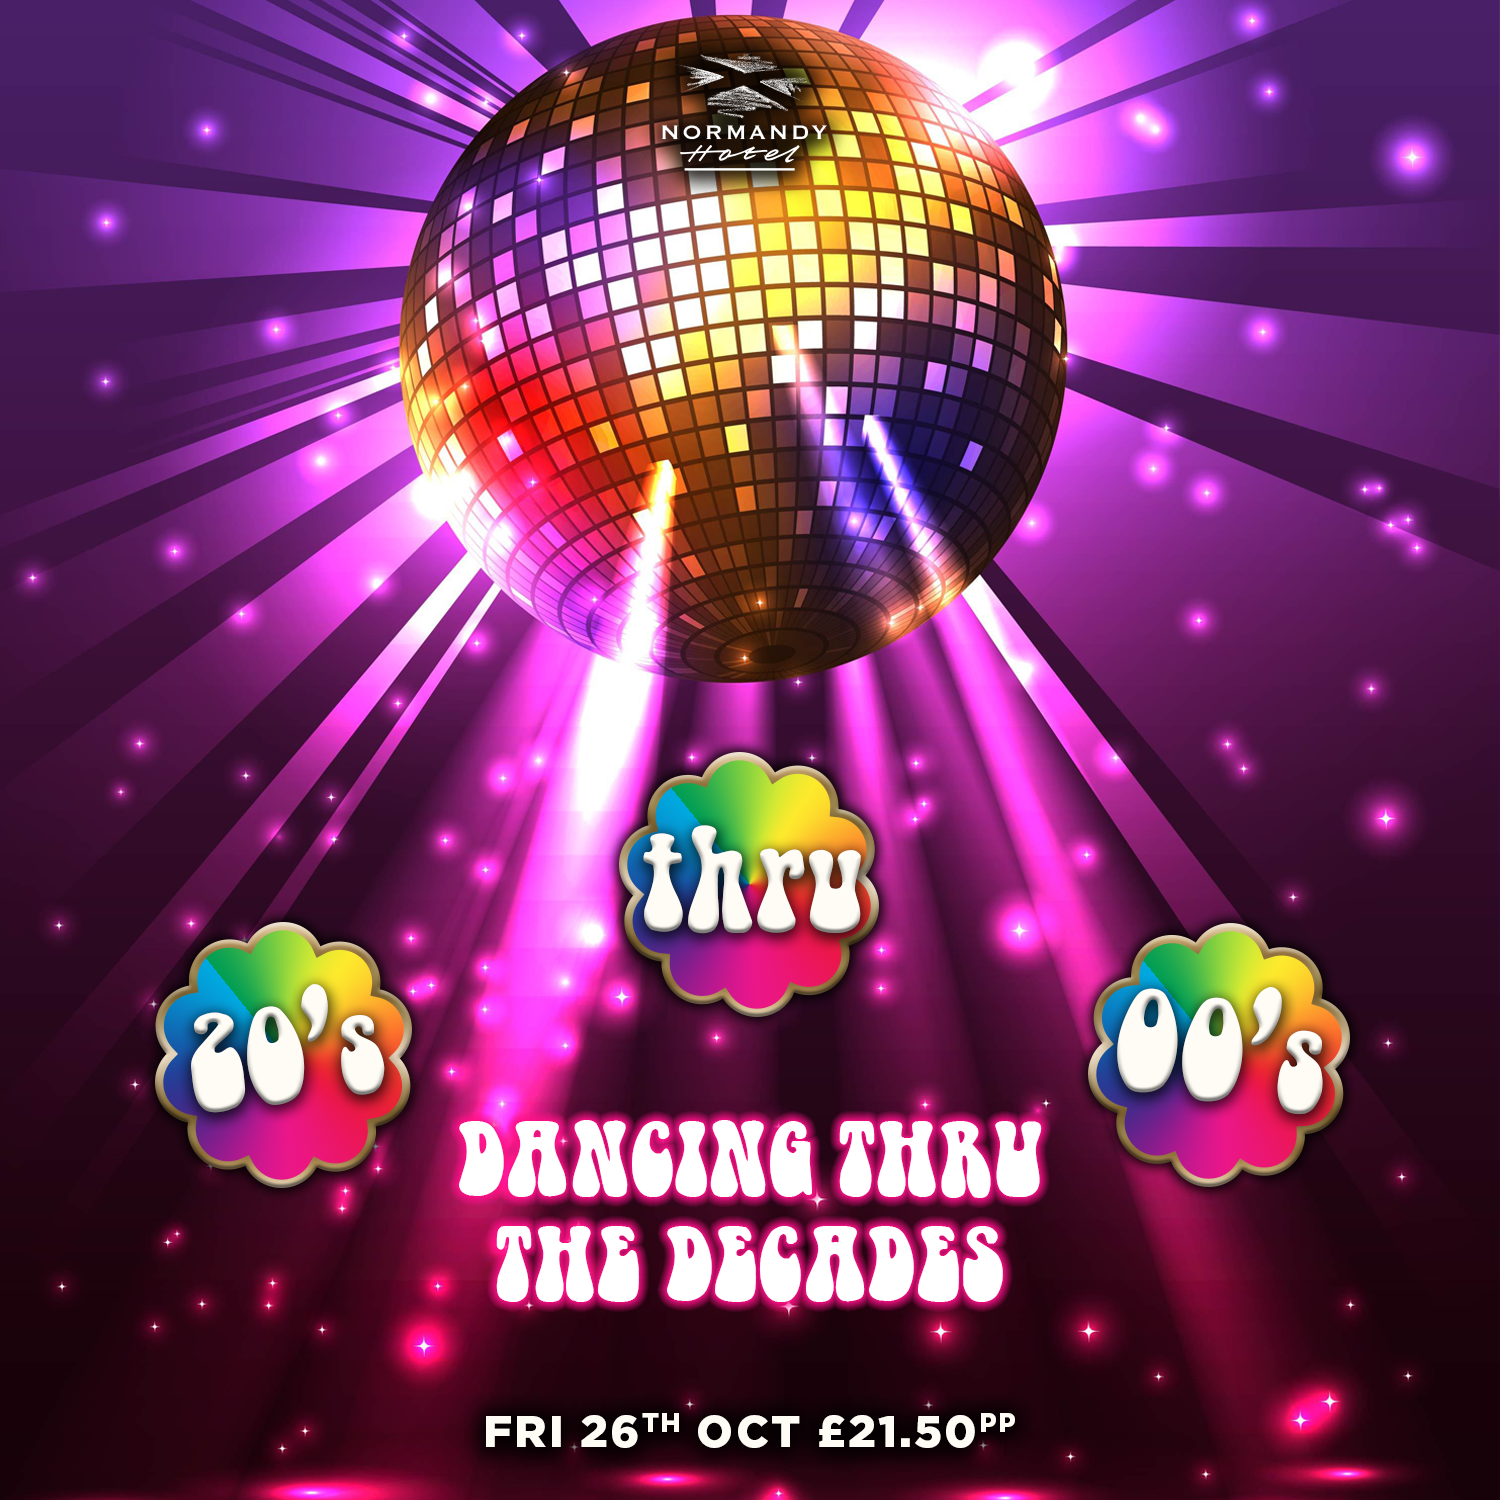 Disco ball, shinning down, with 20's thru 00's air bubbles. Dancing Thru the Decades, tribute night at the Normandy Hotel, 26th October 2018, £21.50 per person